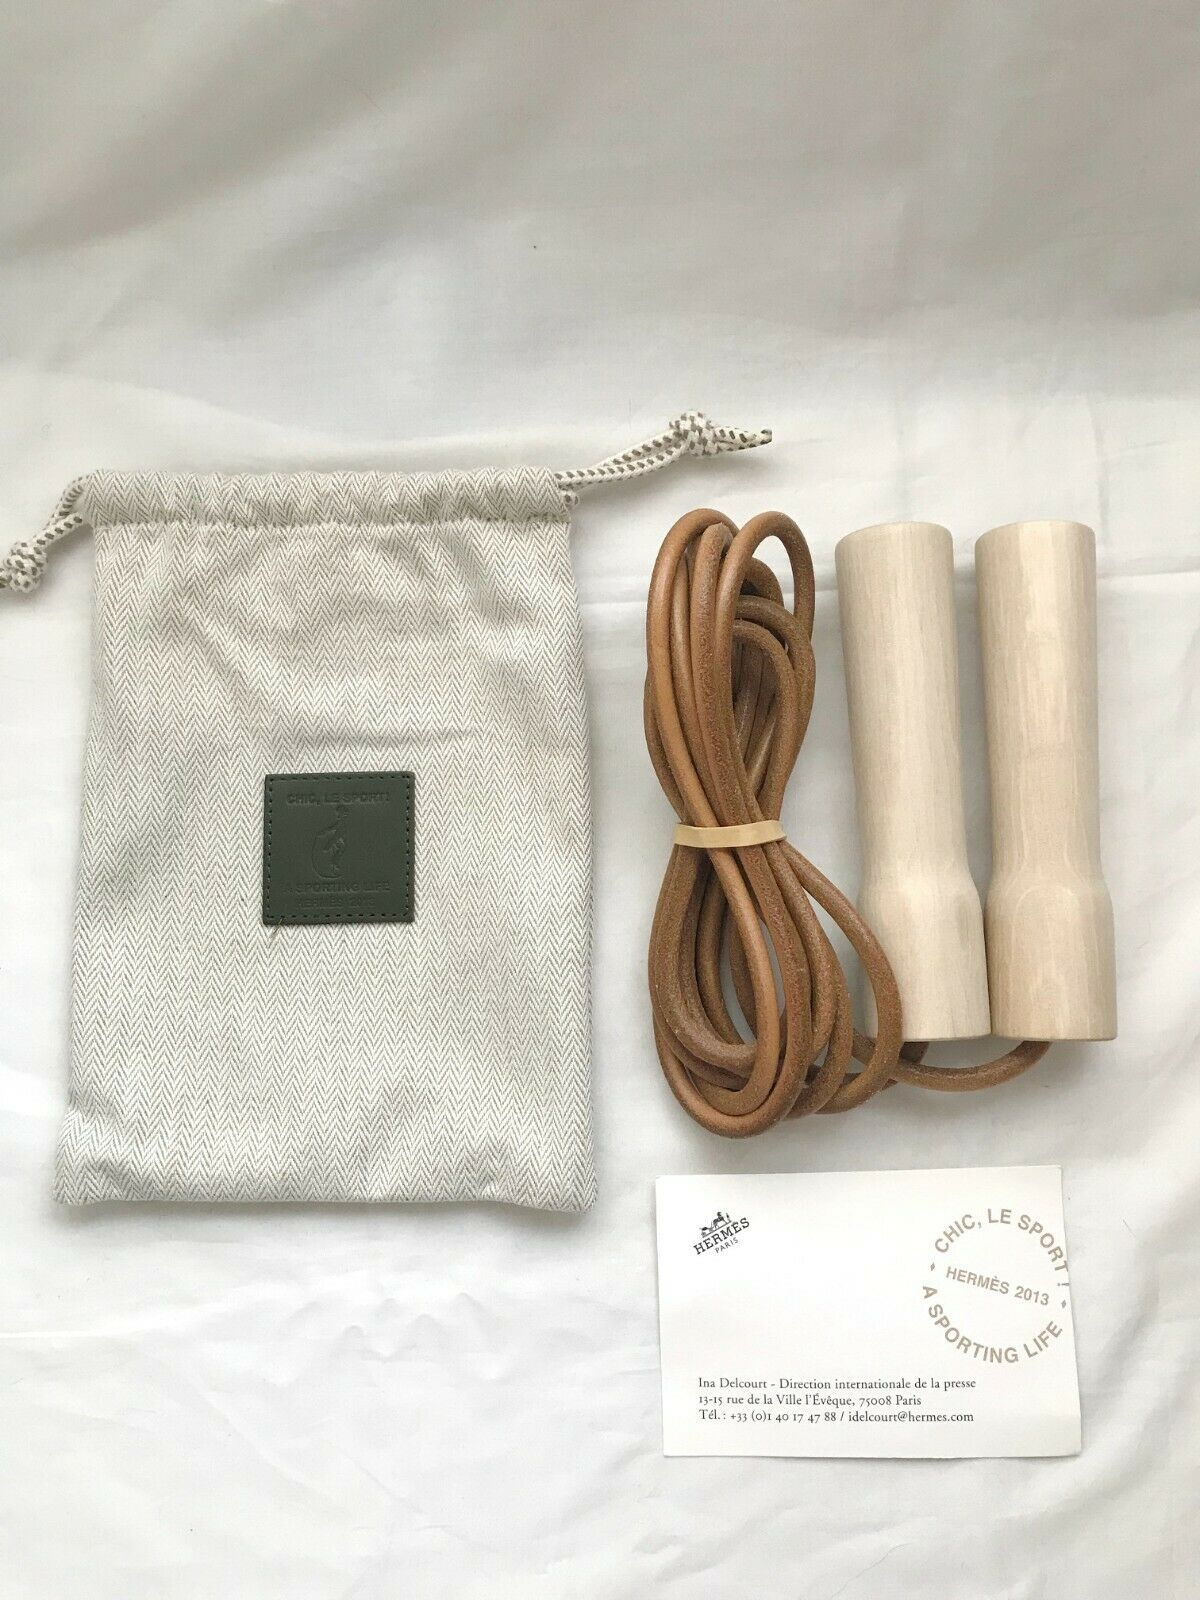 HERMES wood jumping skipping rope for petit h home cushion tray towel charm whip